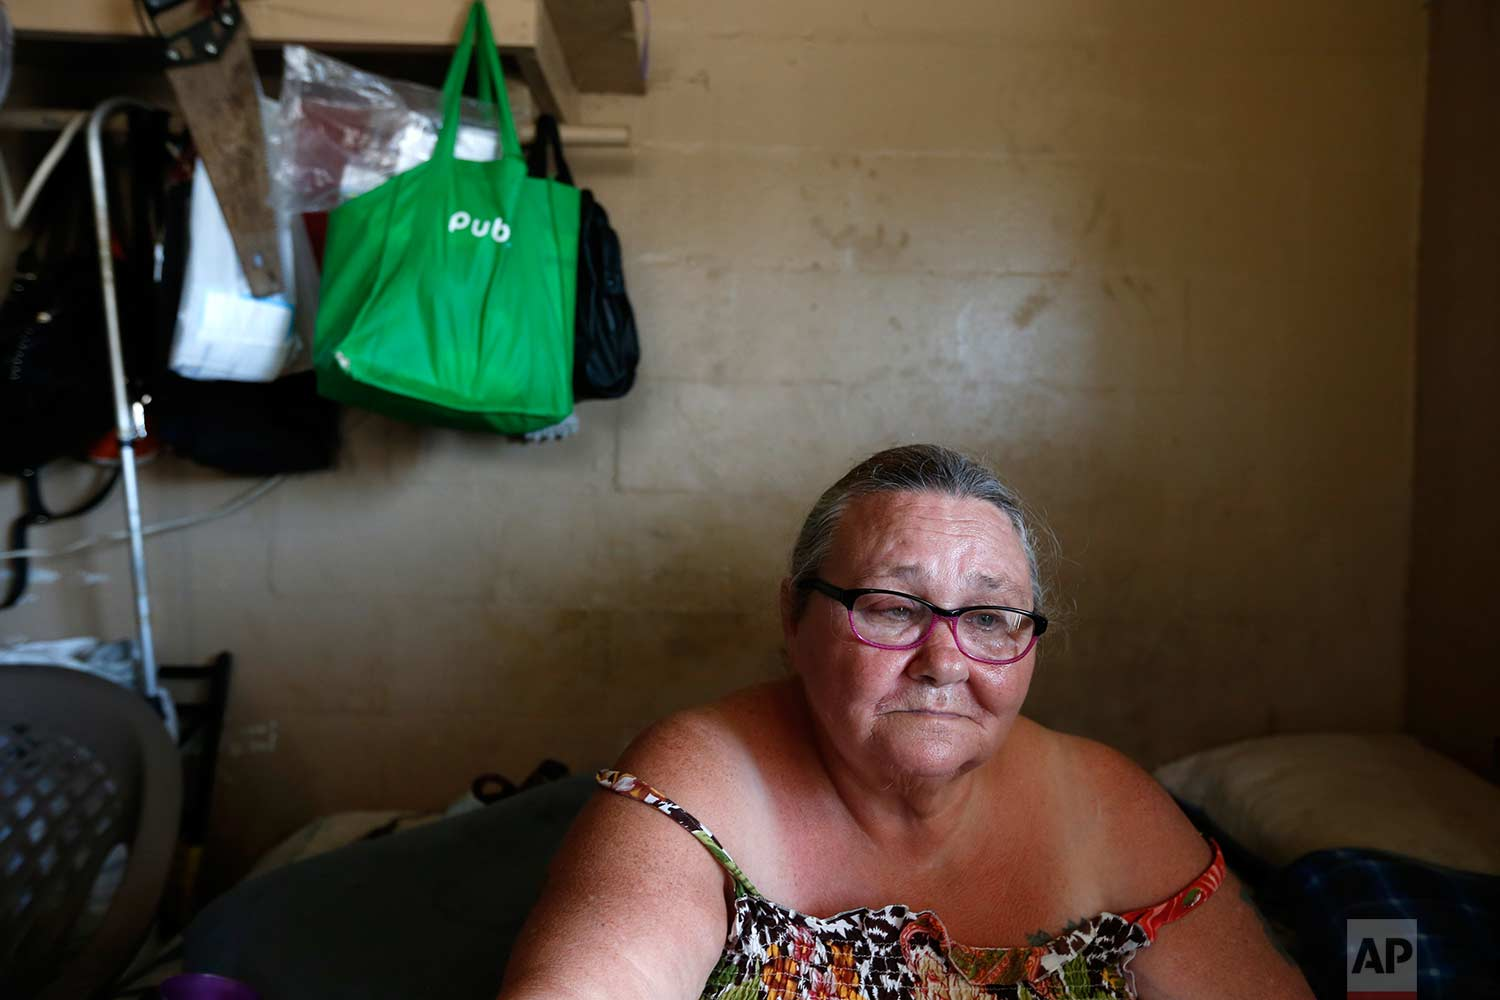 In this Sept. 12, 2017 photo, Pattie Deeley, who has asthma and other health problems which keep her on supplemental oxygen, sits in her small cinderblock apartment during a multi-day power failure in the aftermath of Hurricane Irma, in Immokalee, Fla. Unable to cook after the storm, Deeley said she had to spend extra money buying meals after Irma. (AP Photo/Gerald Herbert)